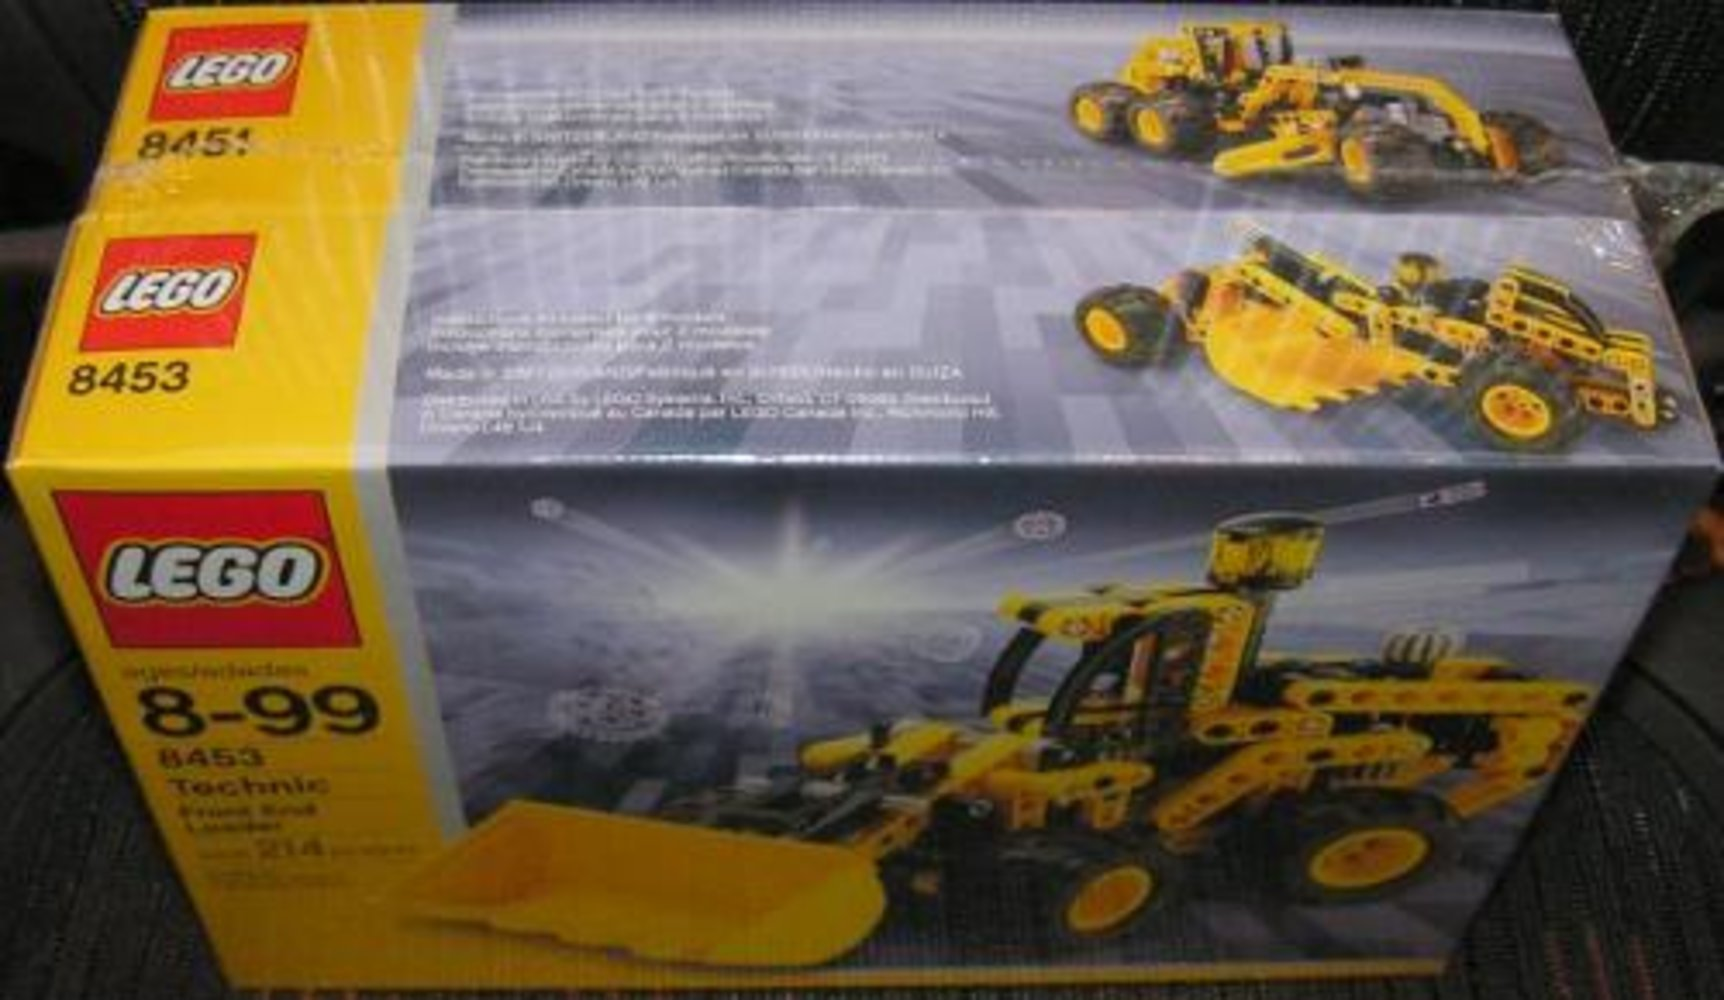 Dumper and Front End Loader Co-Pack (contains 8451 and 8453)